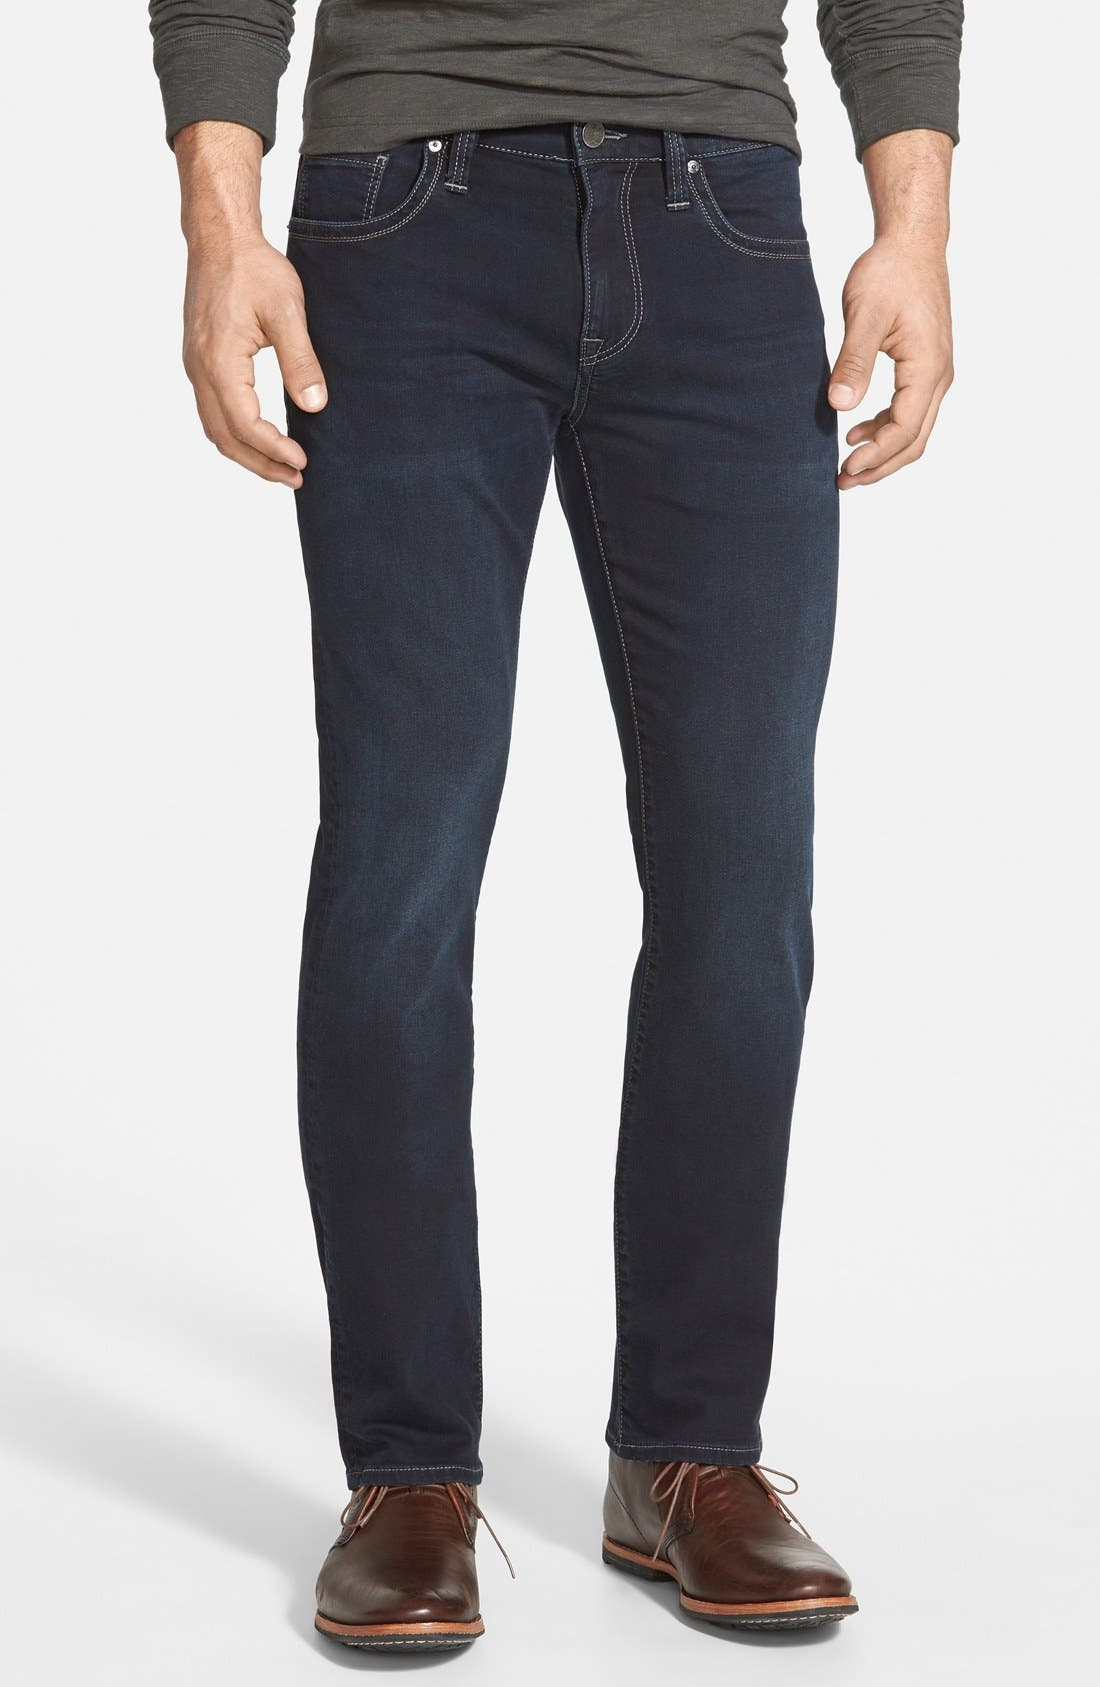 Courage Relaxed Fit Jeans,                         Main,                         color, MIDNIGHT AUSTIN